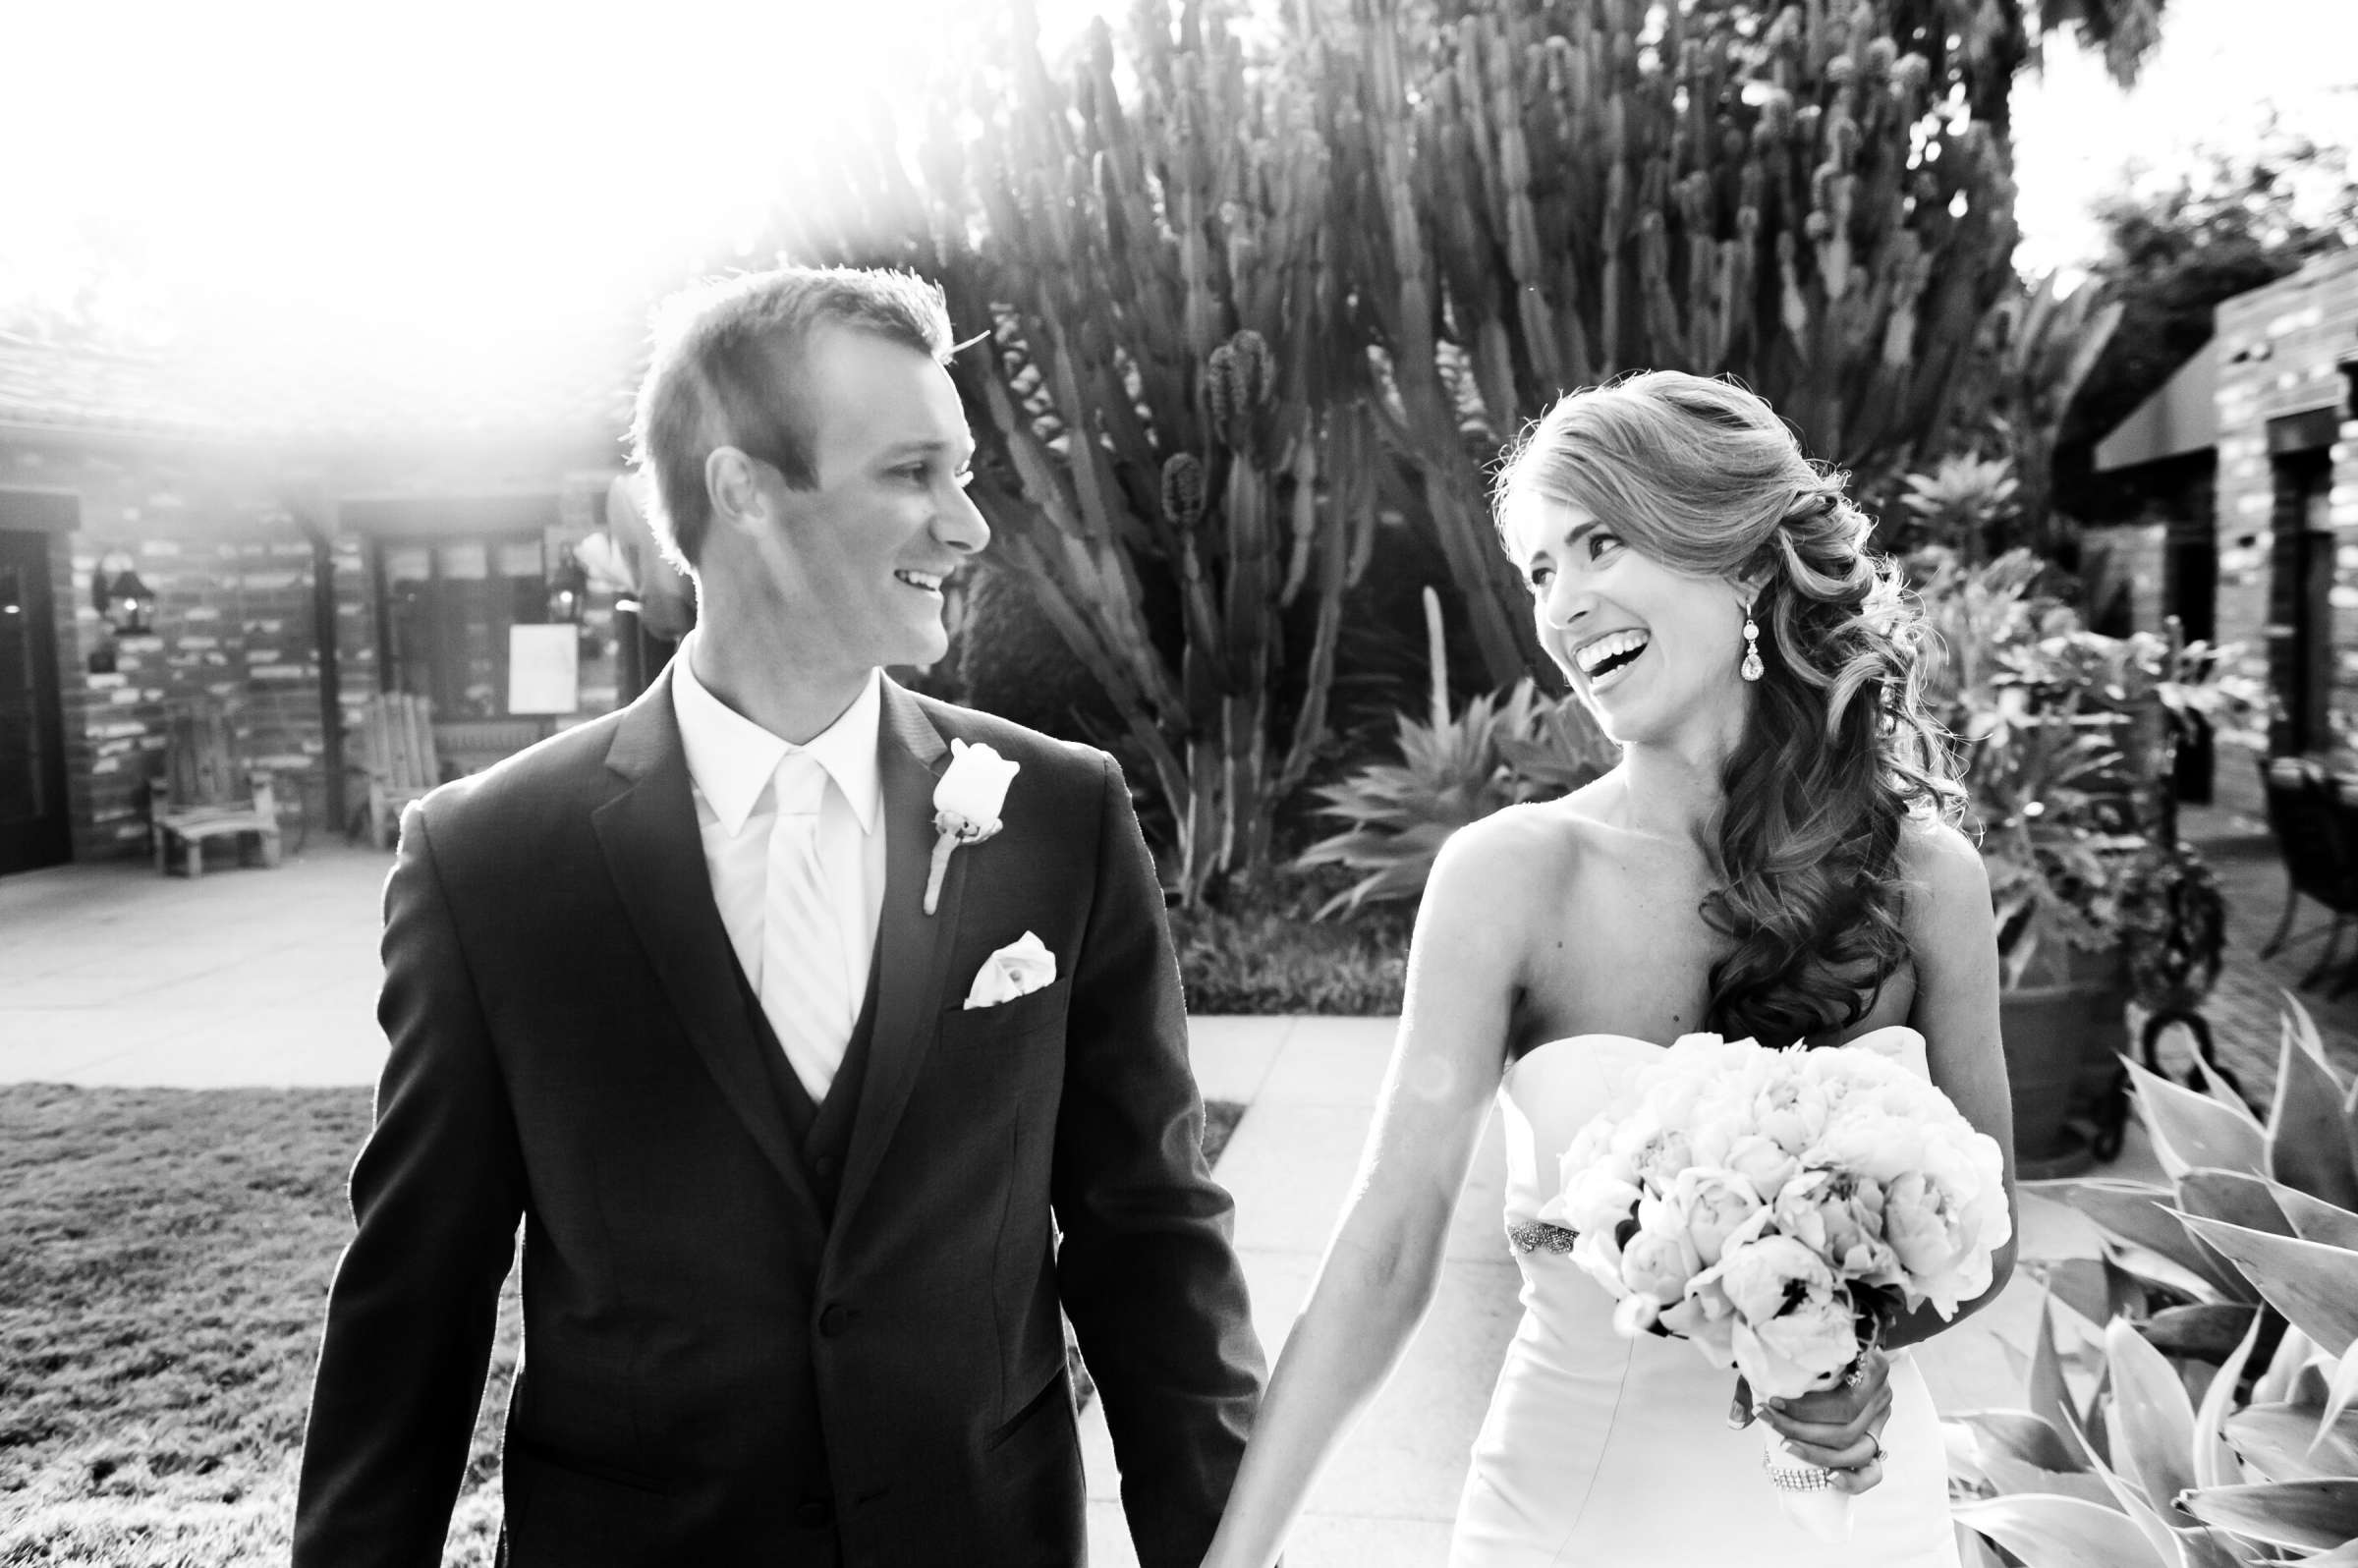 Estancia Wedding coordinated by CBS Weddings, Kaslin and Andy Wedding Photo #3 by True Photography